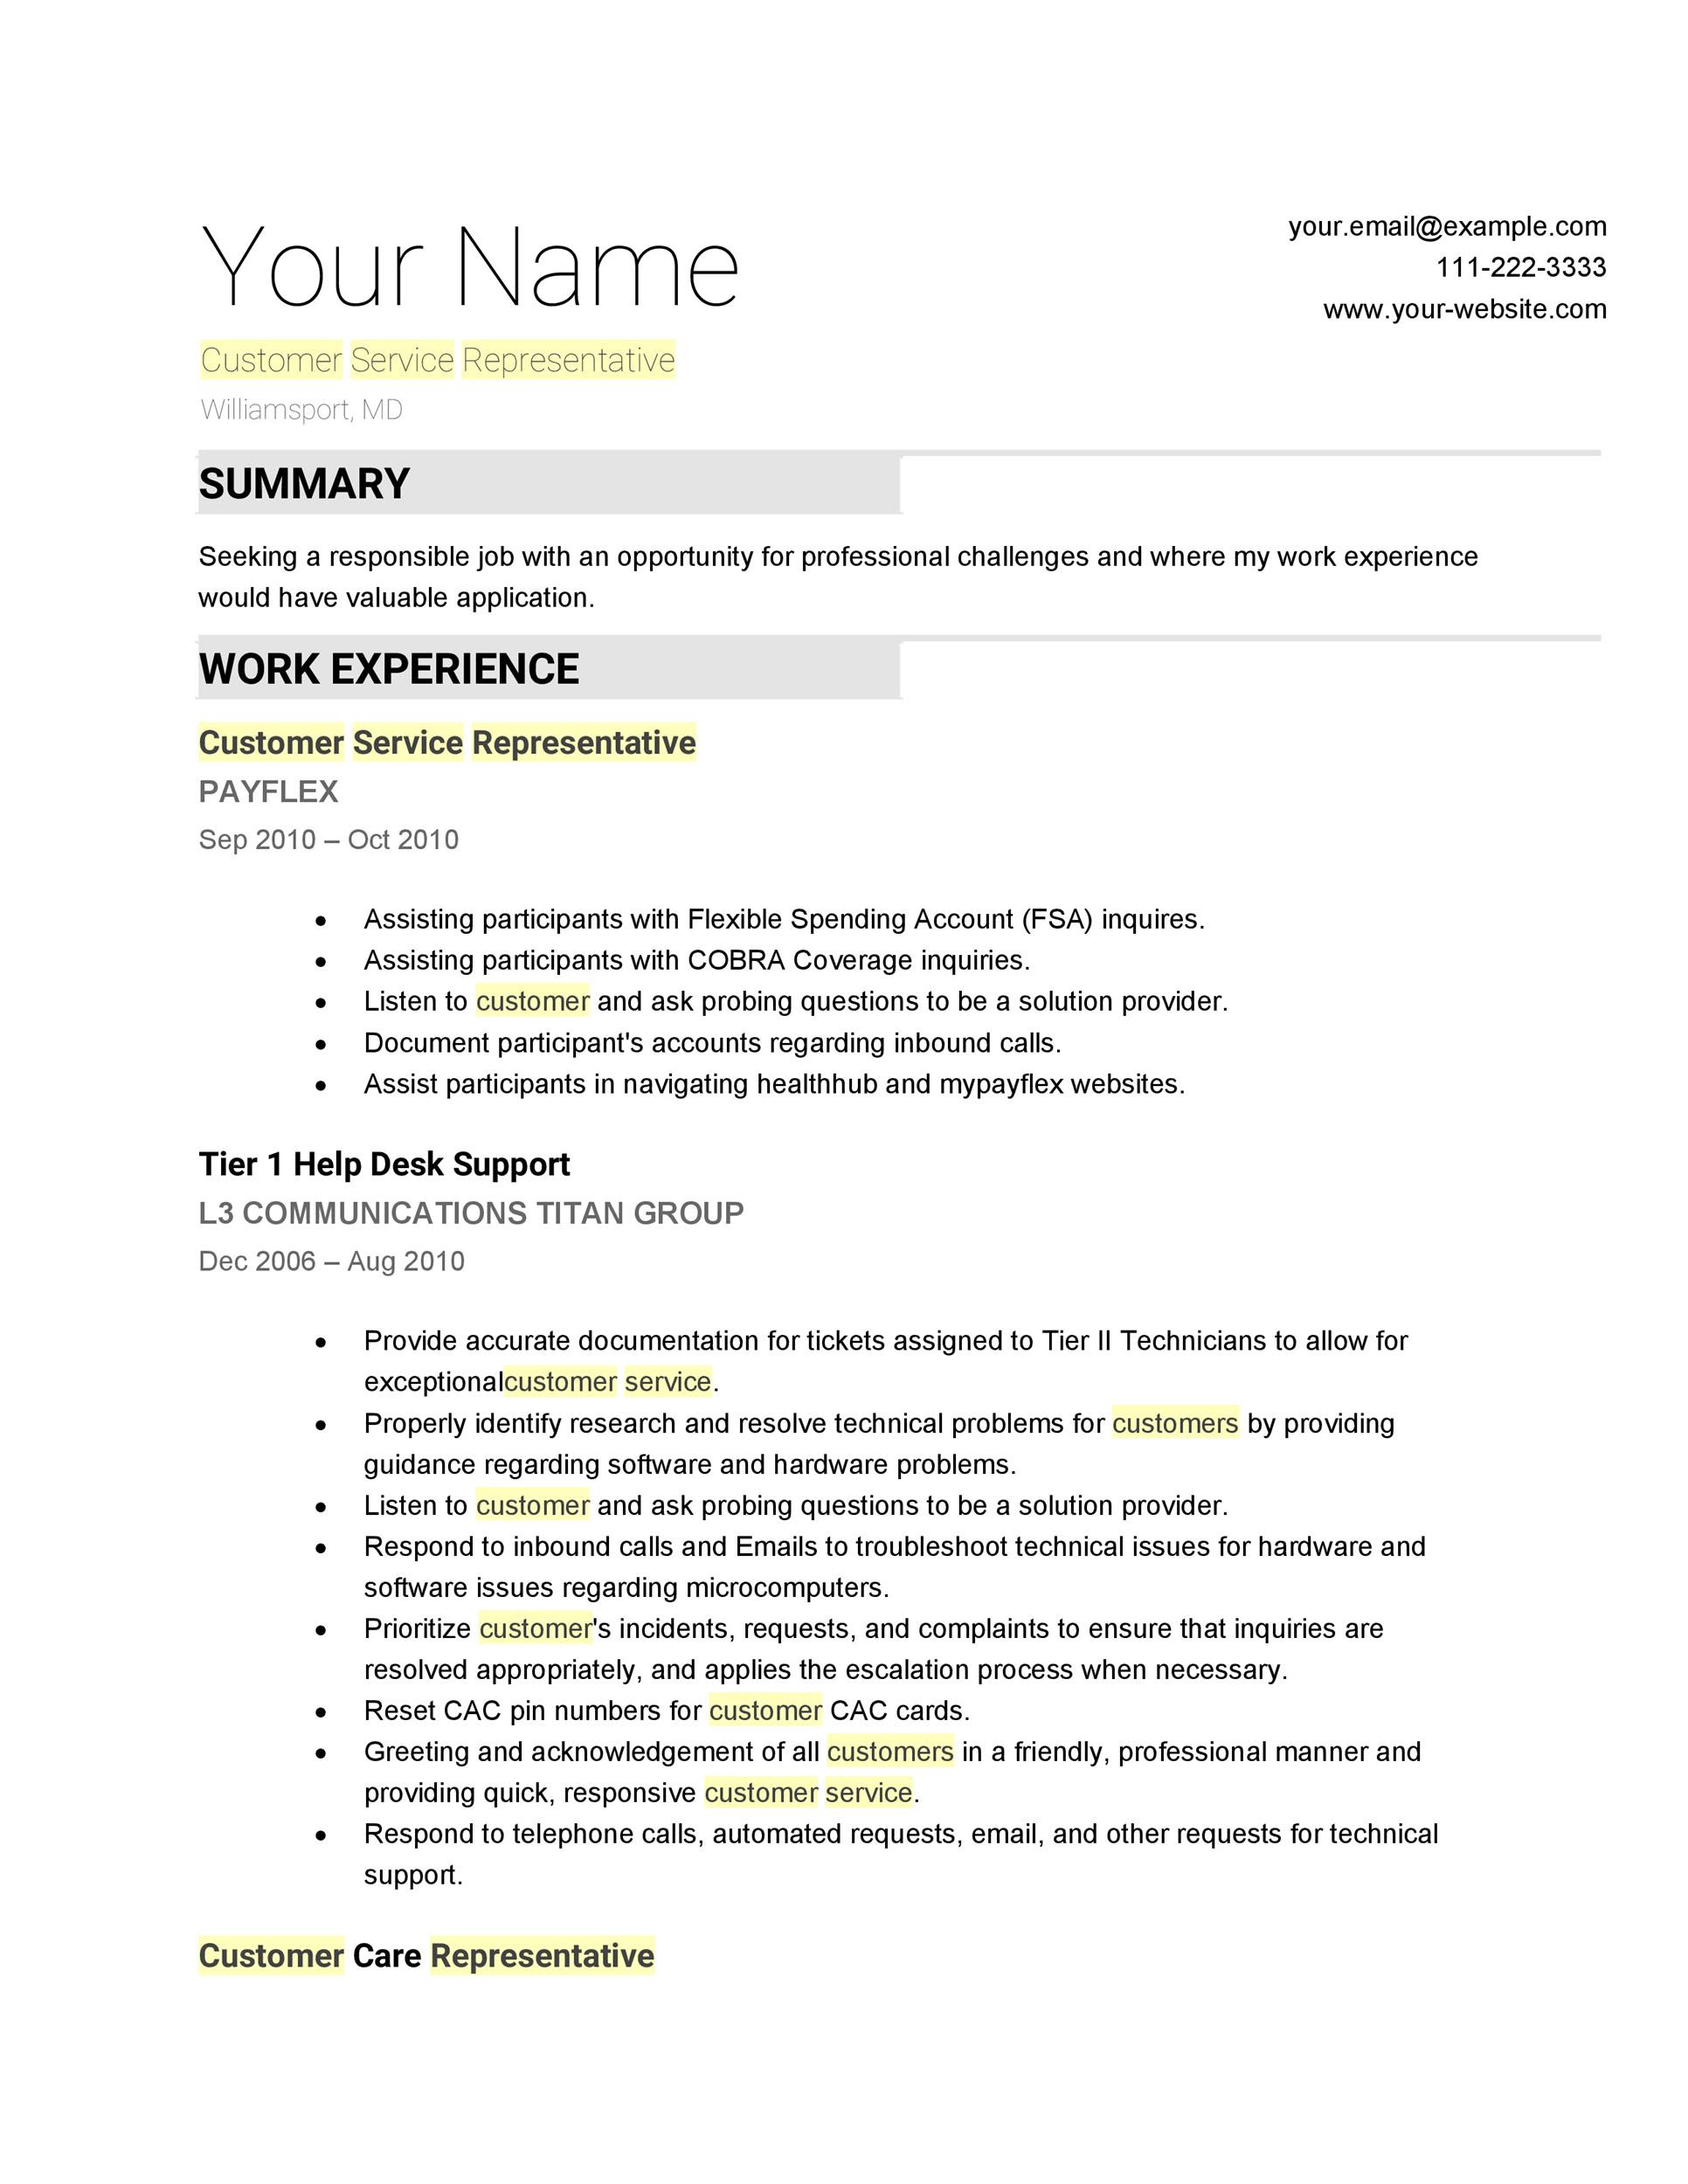 30+ Customer Service Resume Examples  Template Lab